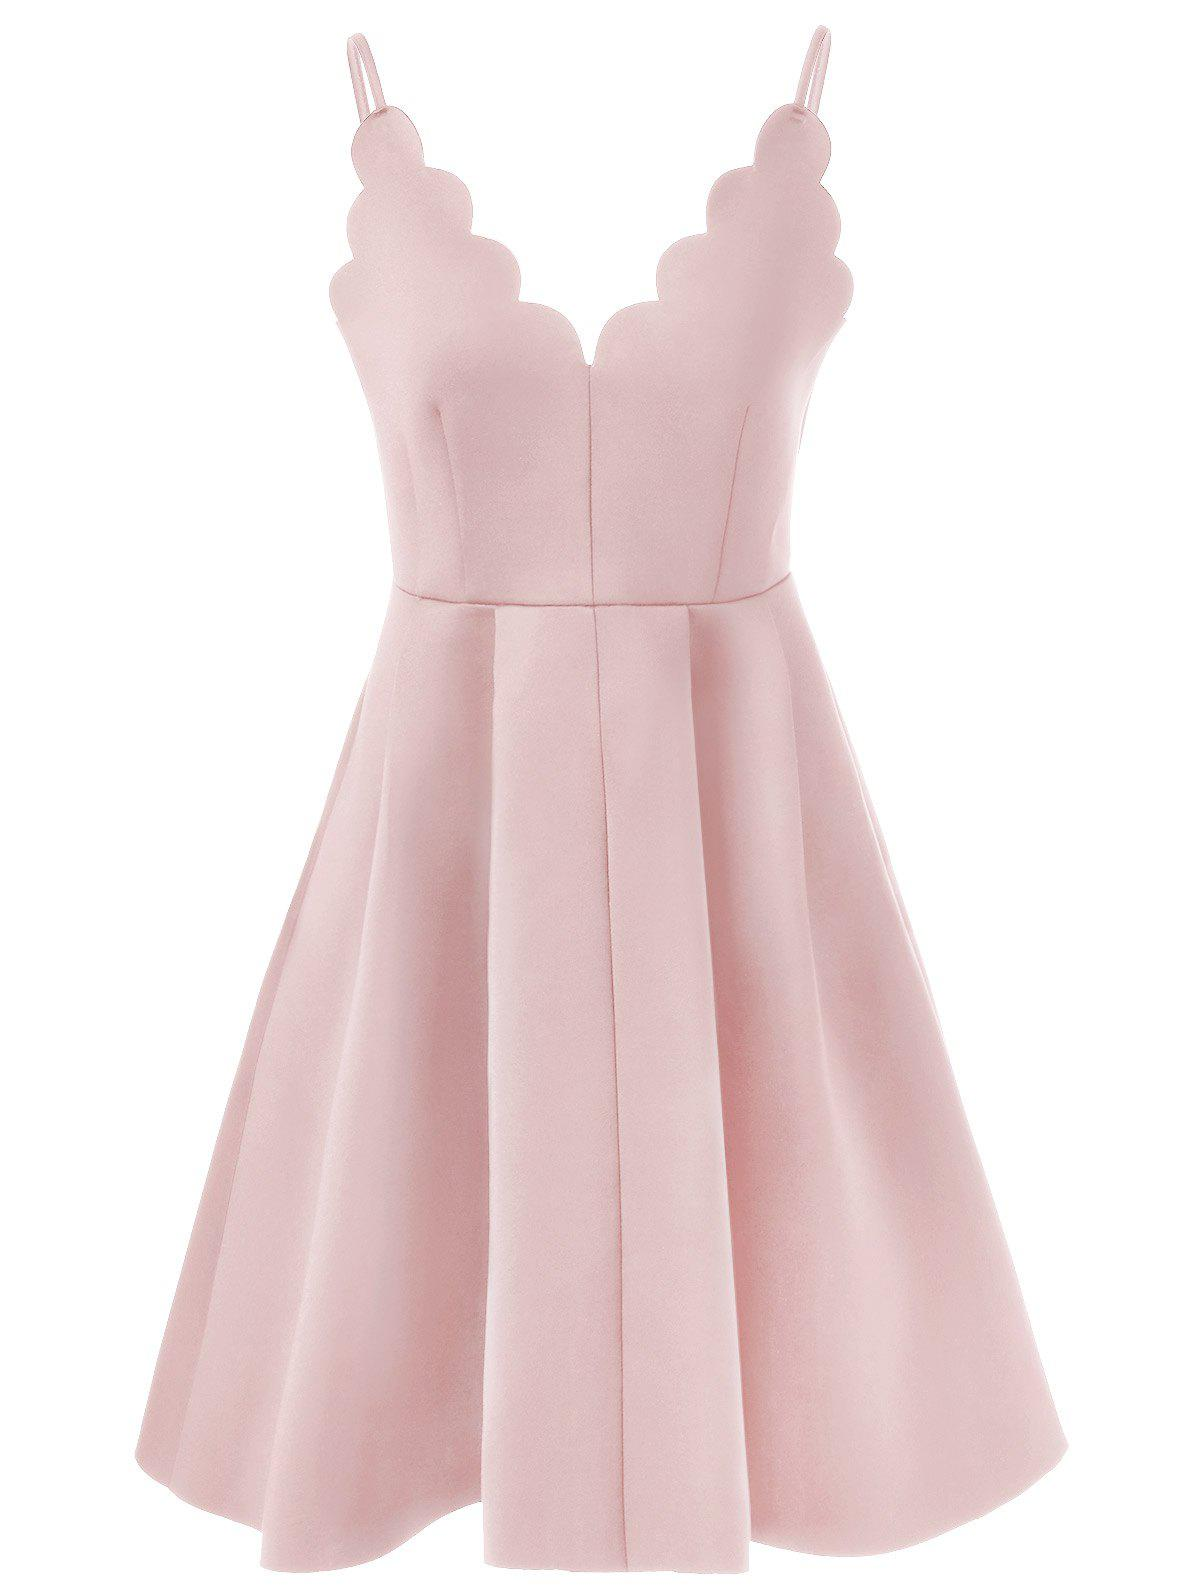 Scalloped A Line Flare Cocktail Slip Dress - NUDE PINK M